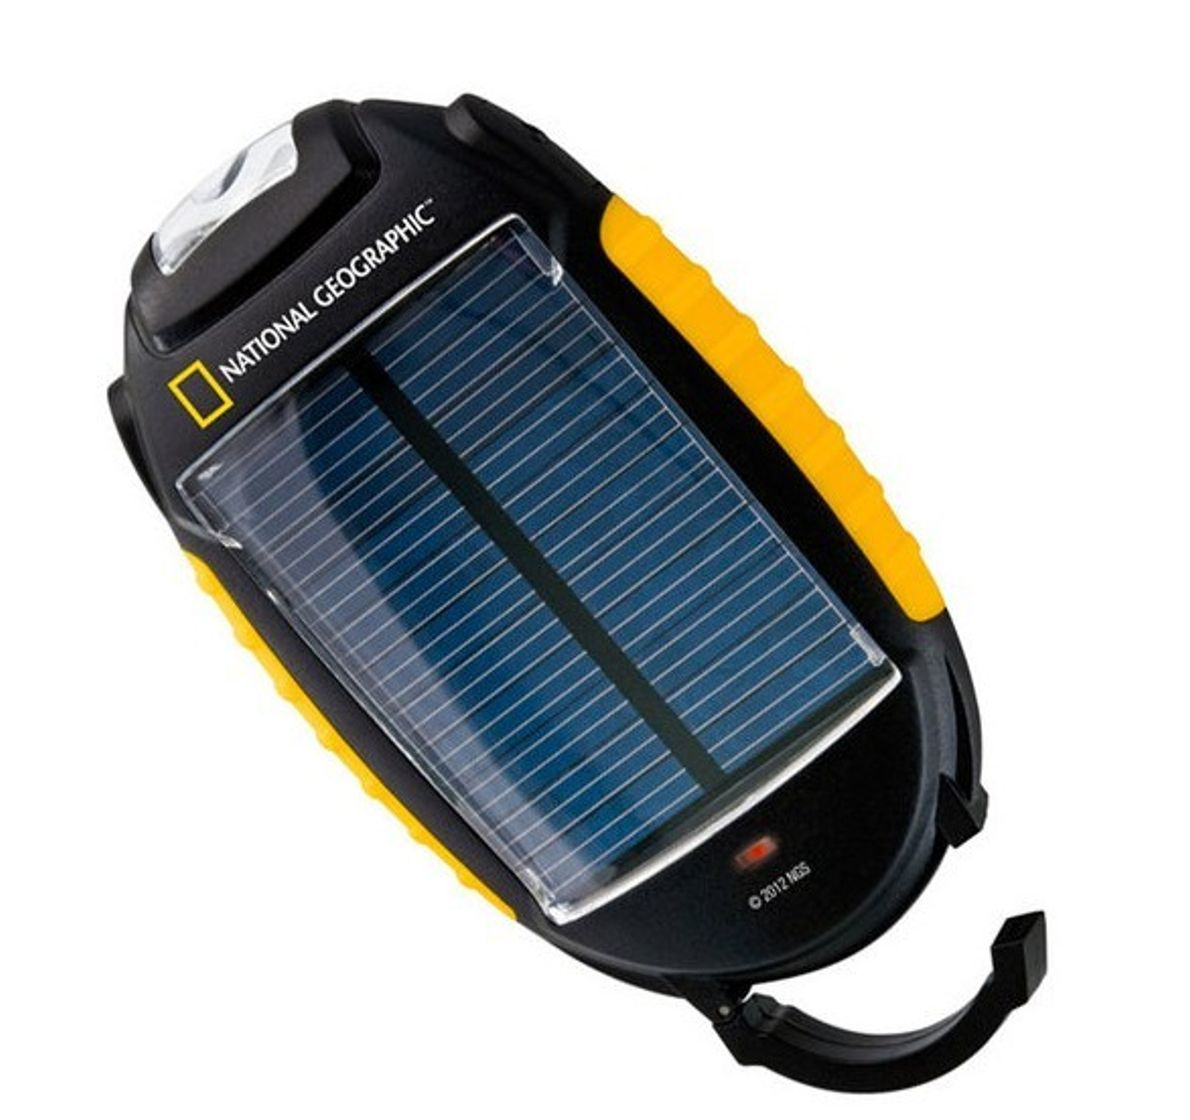 National Geographic Solar Charger 4 in 1